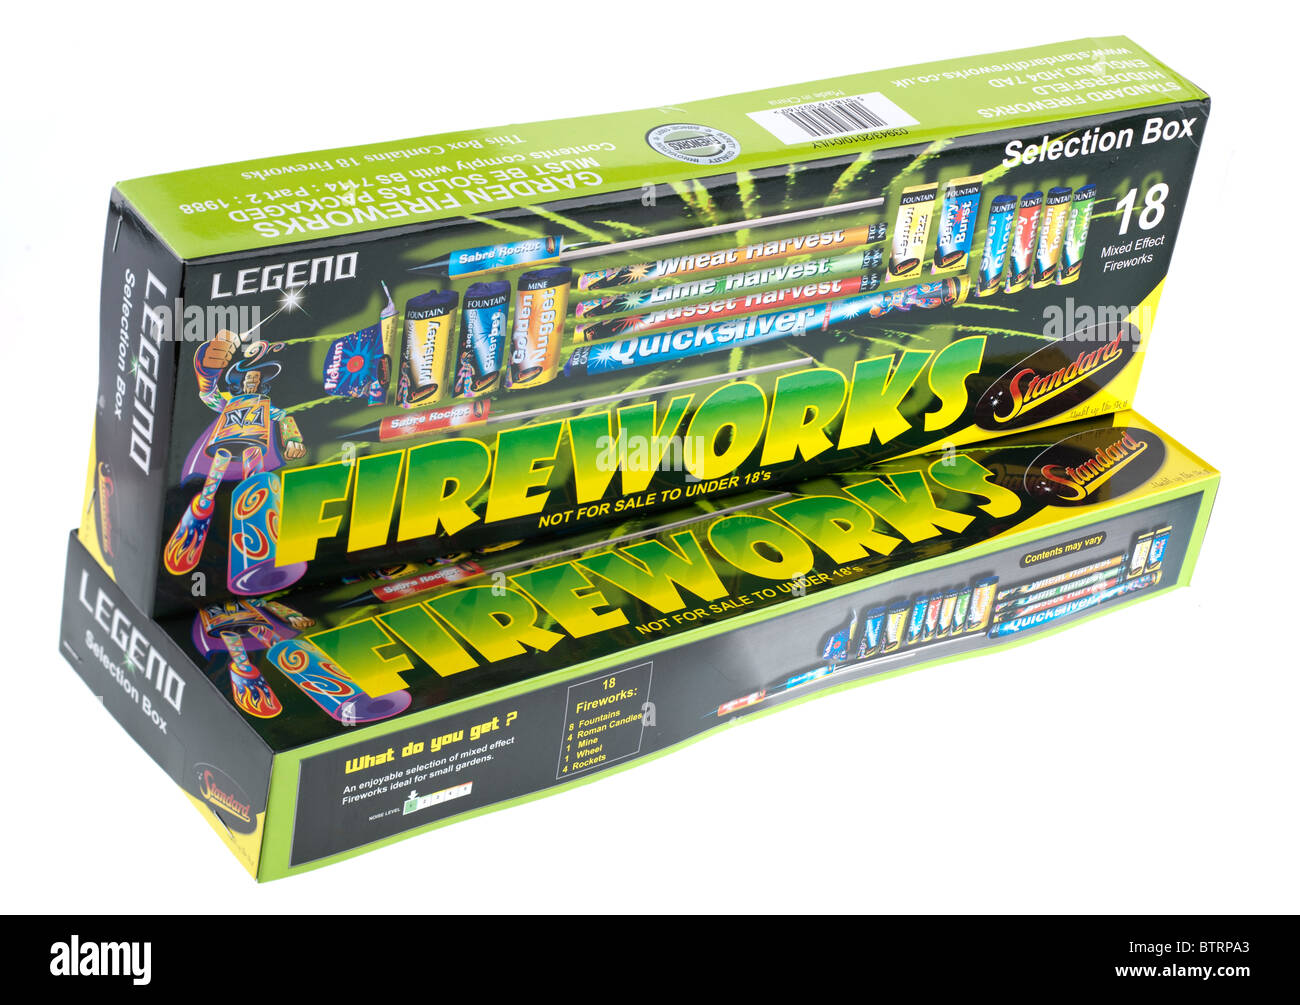 Two Selection Boxes Of Standard Legend Fireworks For Small ...